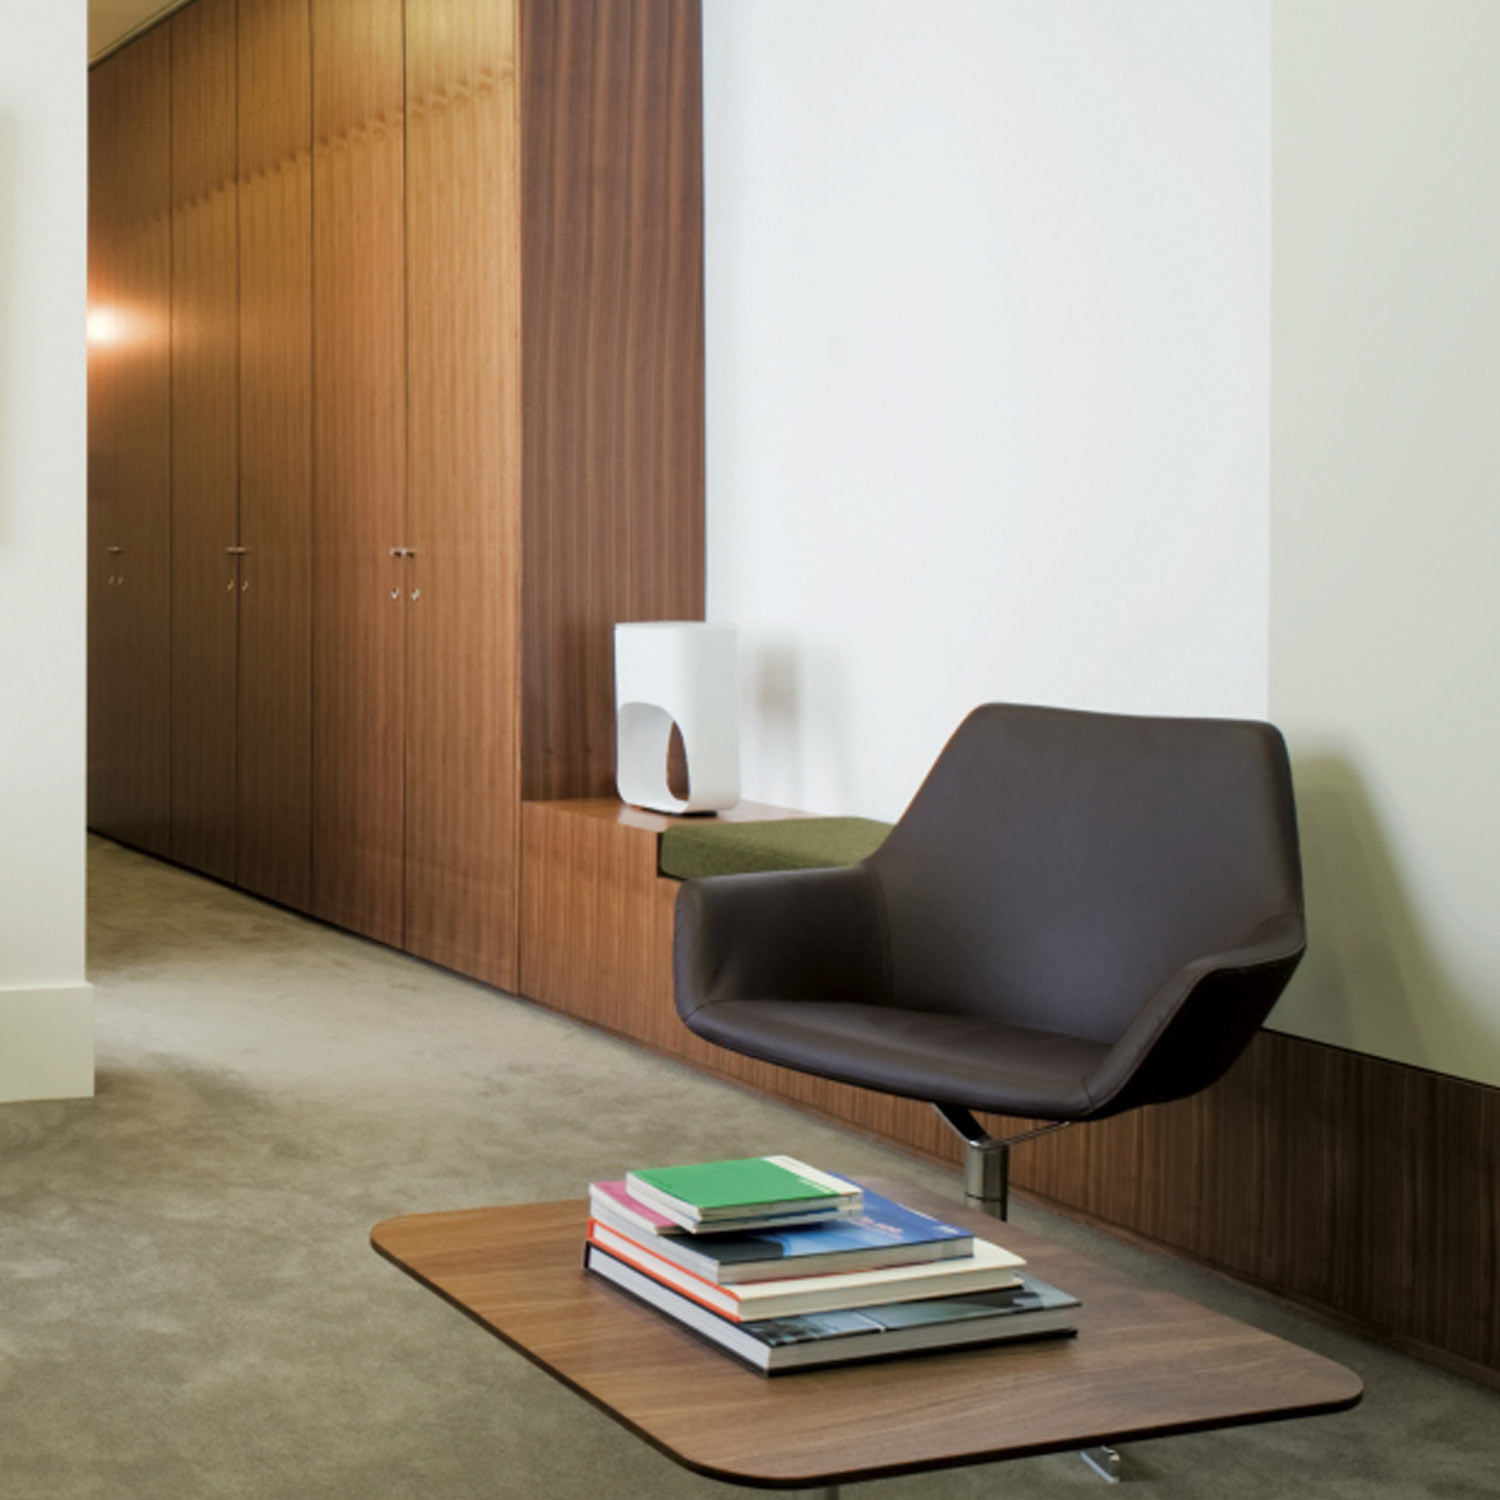 Hm86 Chair by Hitch Mylius